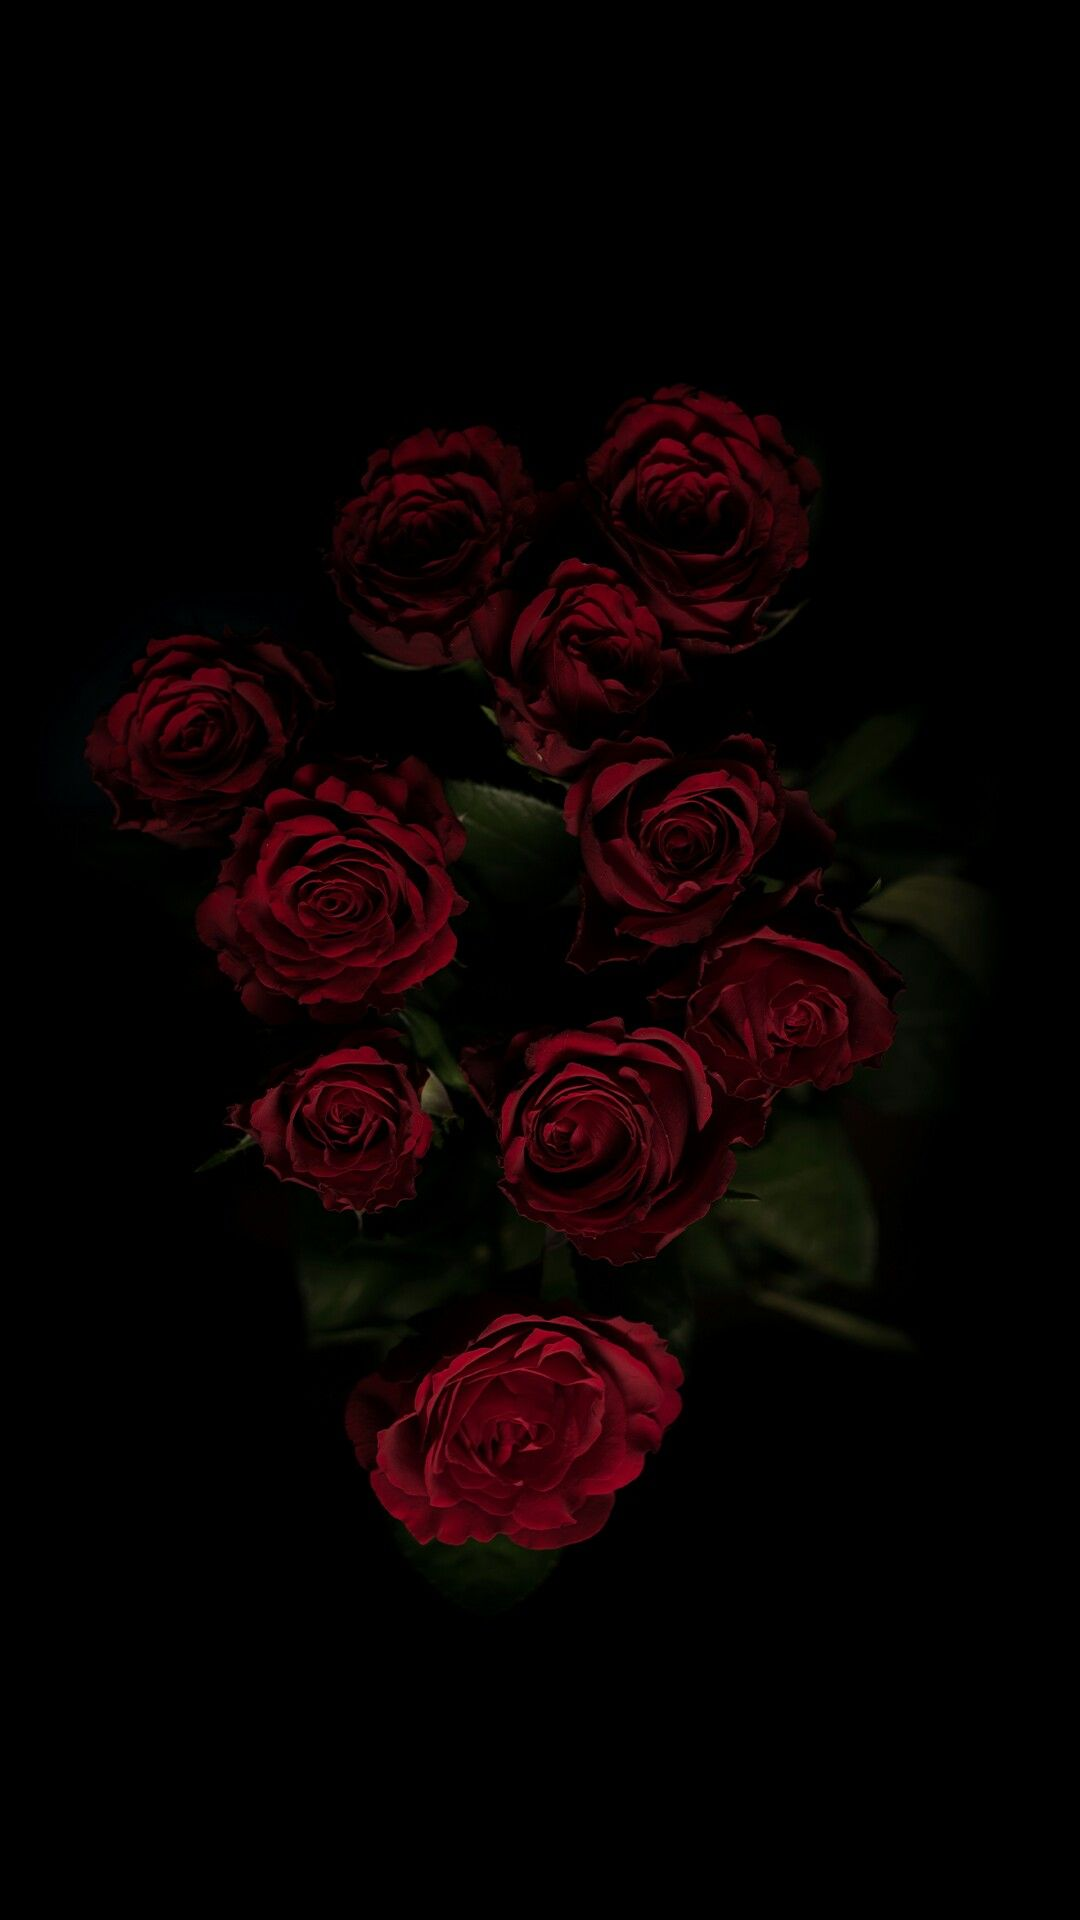 Black Rose Nature Iphone Wallpaper Flower Iphone Wallpaper Rose Flower Wallpaper